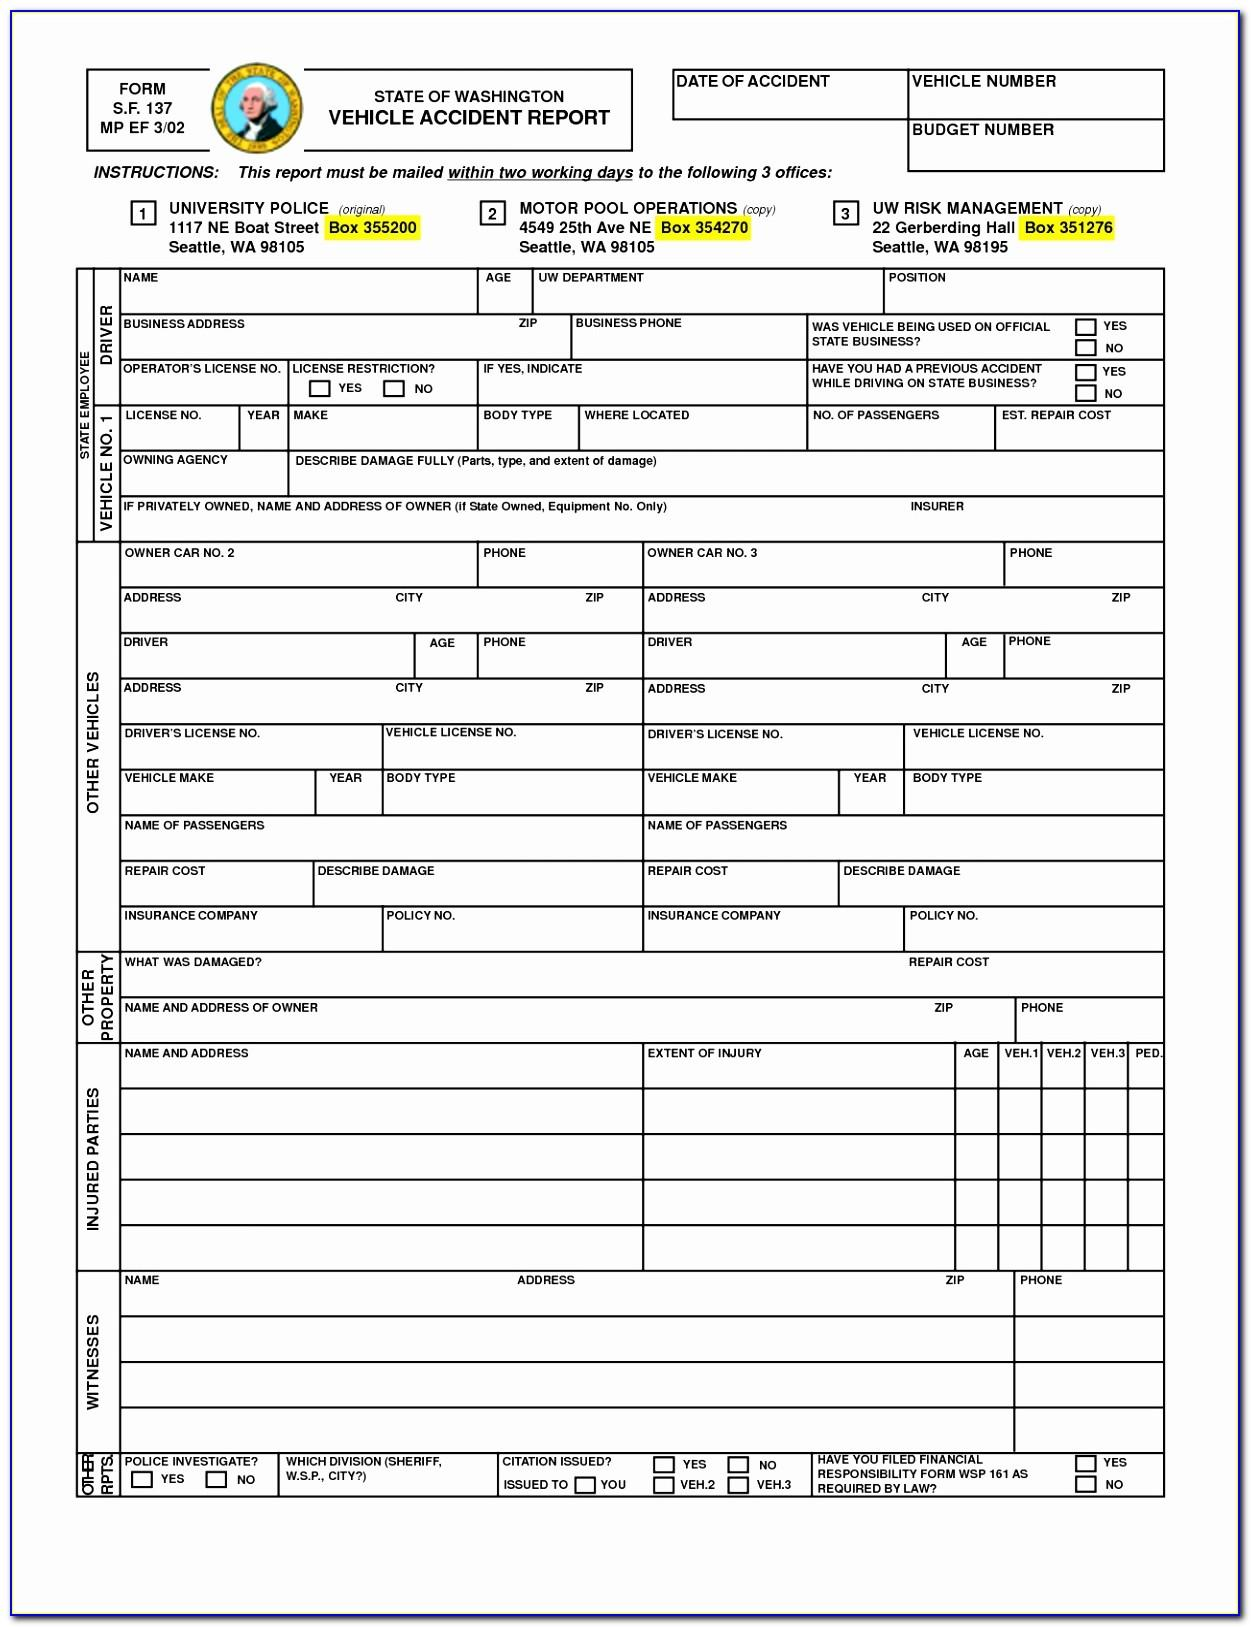 Vehicle Accident Report Form Pdf